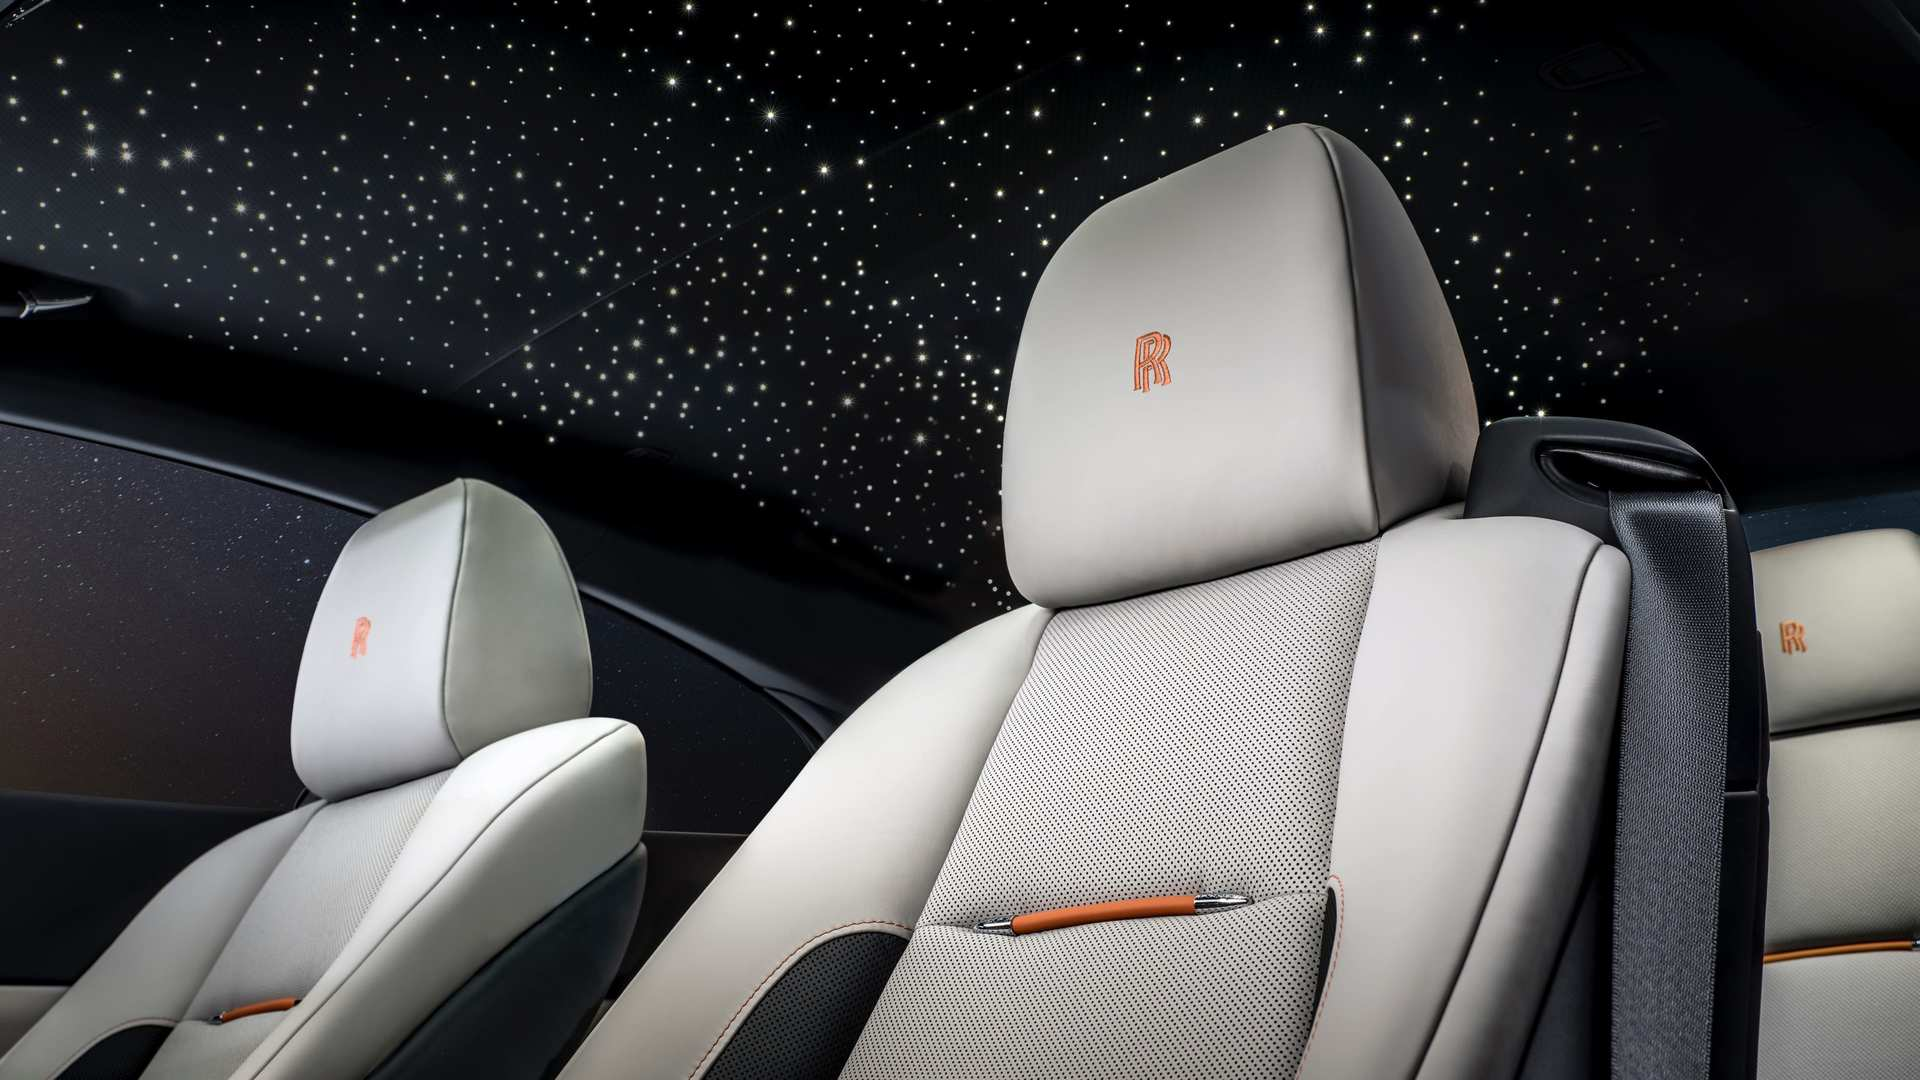 Rolls-Royce Wraith Nebula collection, close up of two front seats with skylight on